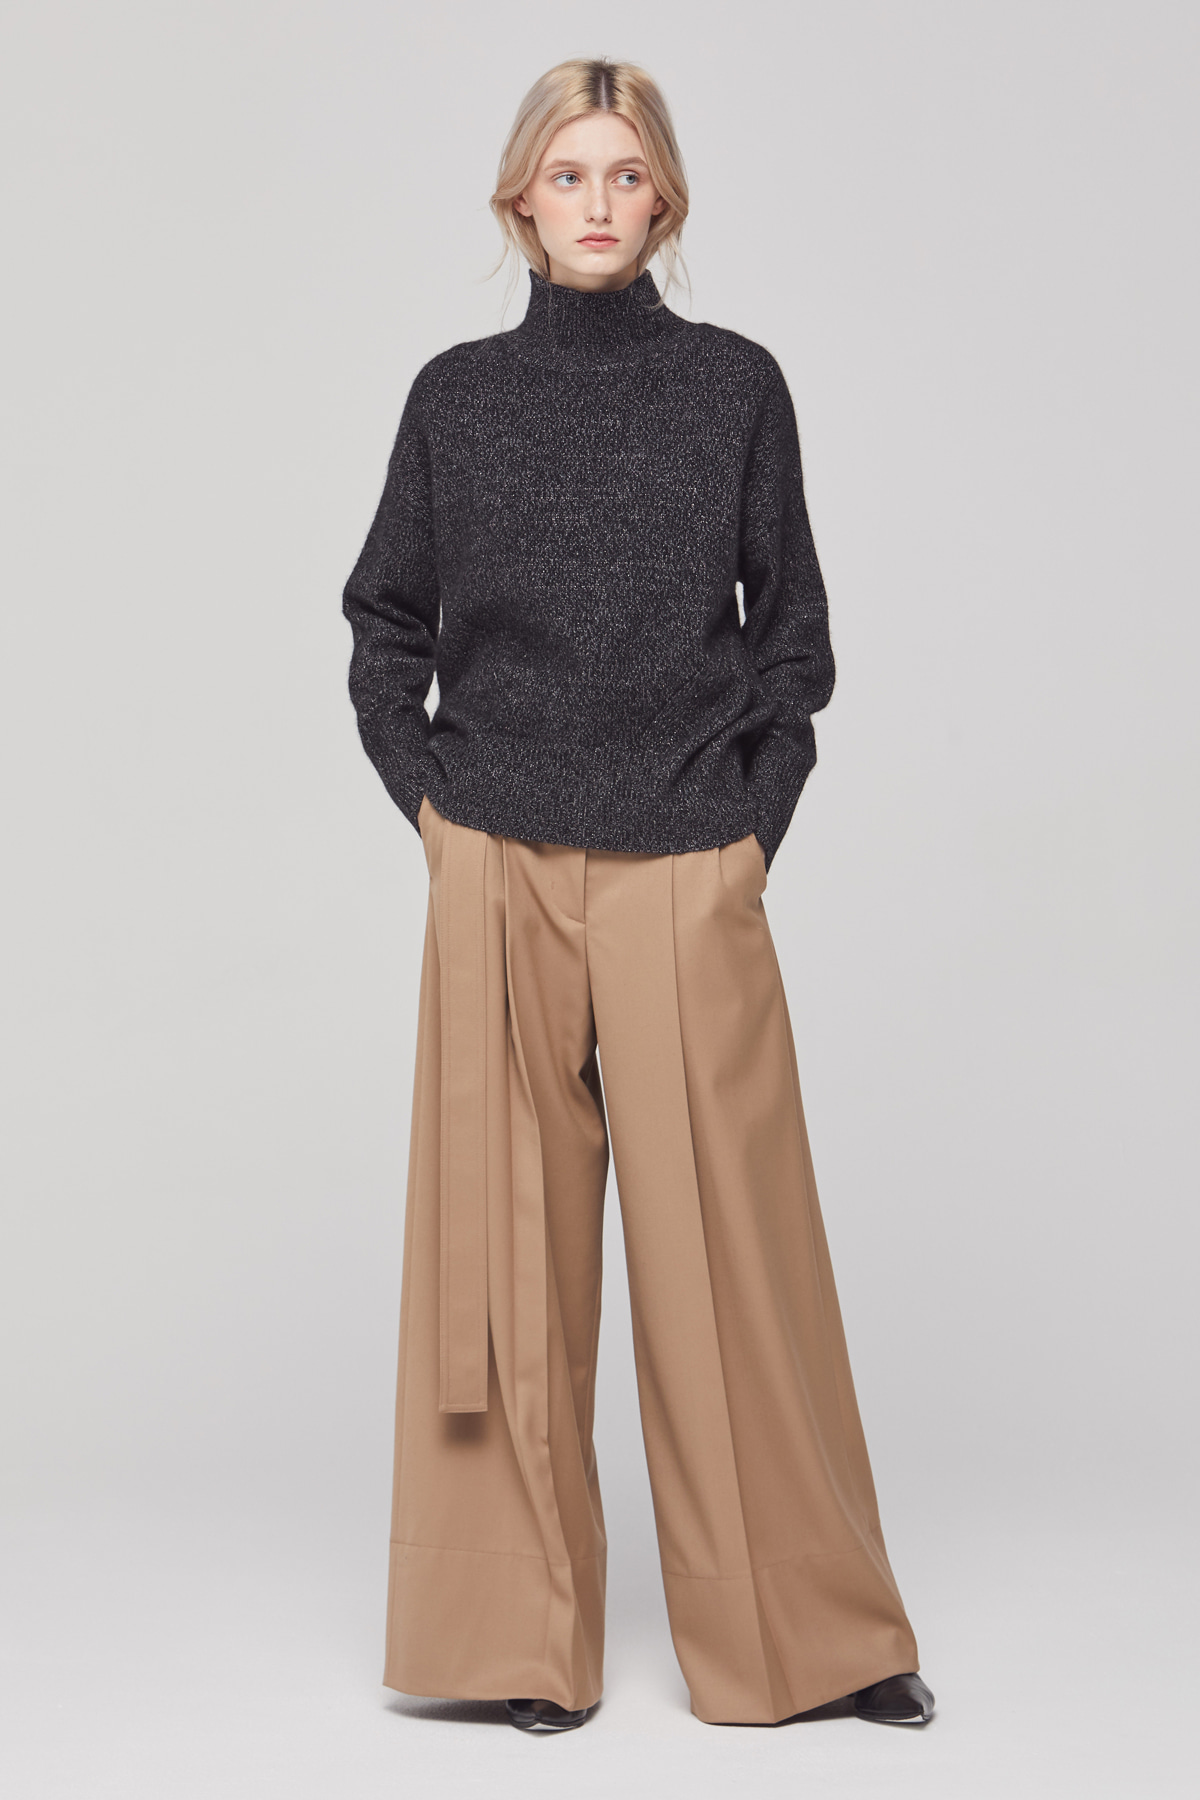 DEMERE WOOL BELTED HIGH-WAIST PANTS (BEIGE)